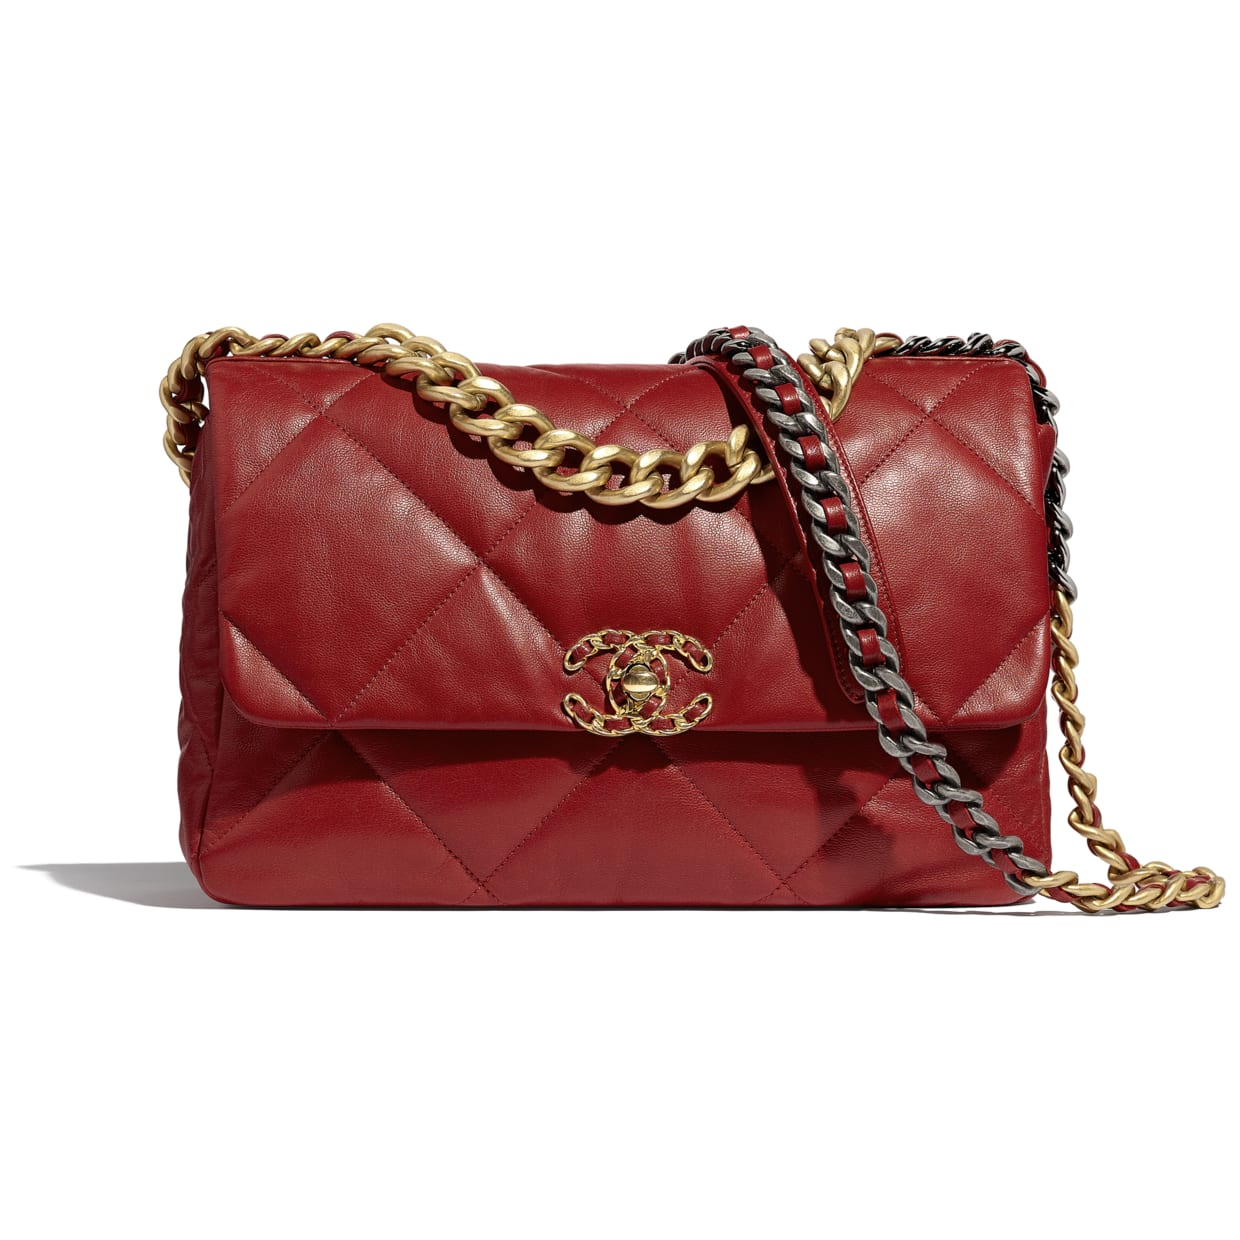 Red Chanel 19